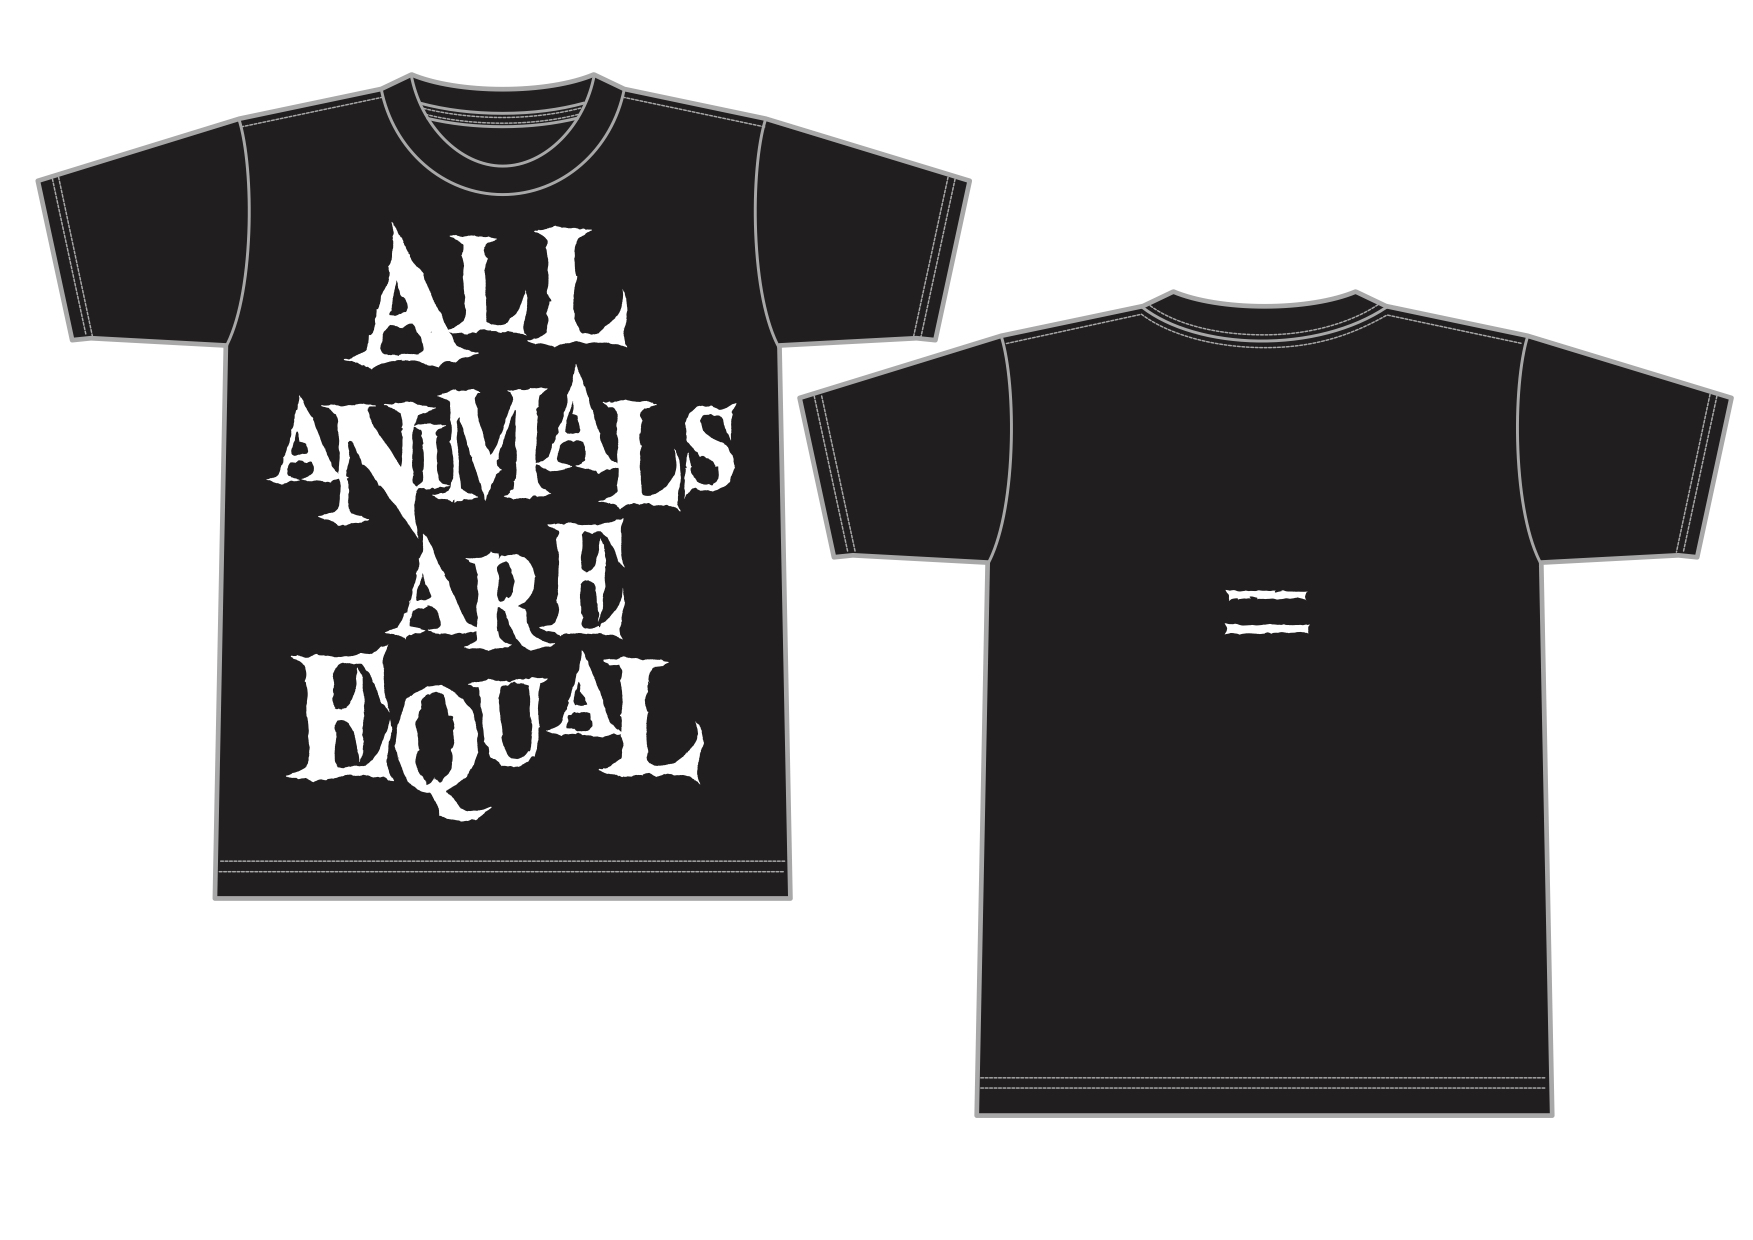 AA= OIO Special _ALL ANIMALS ARE EQUAL_ T-shirtデザイン画像